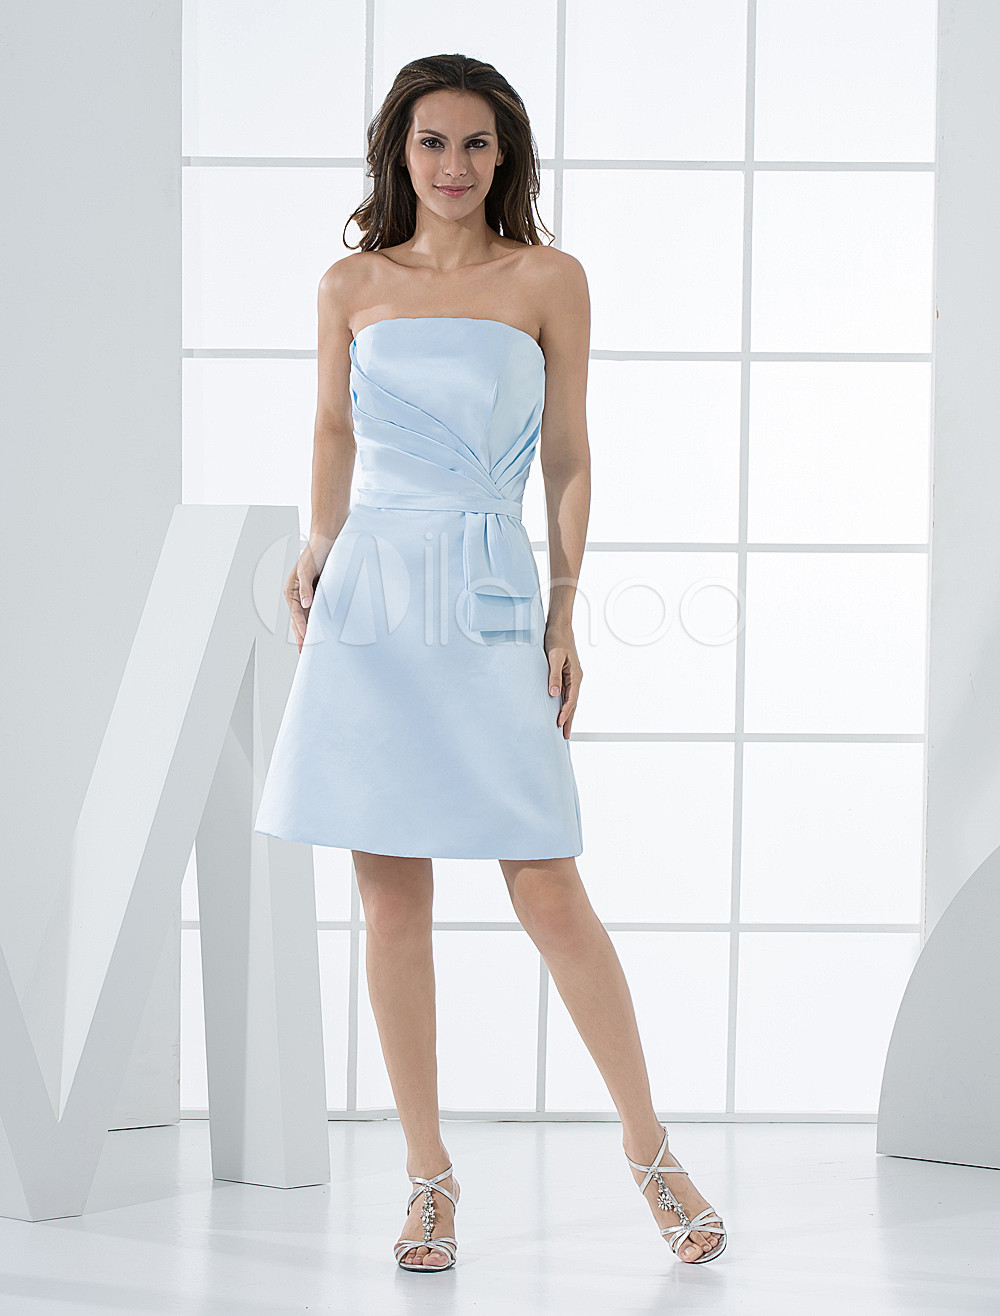 Wonderful Light Sky Blue Strapless A-line Shank Length Satin Bridesmaids Dress